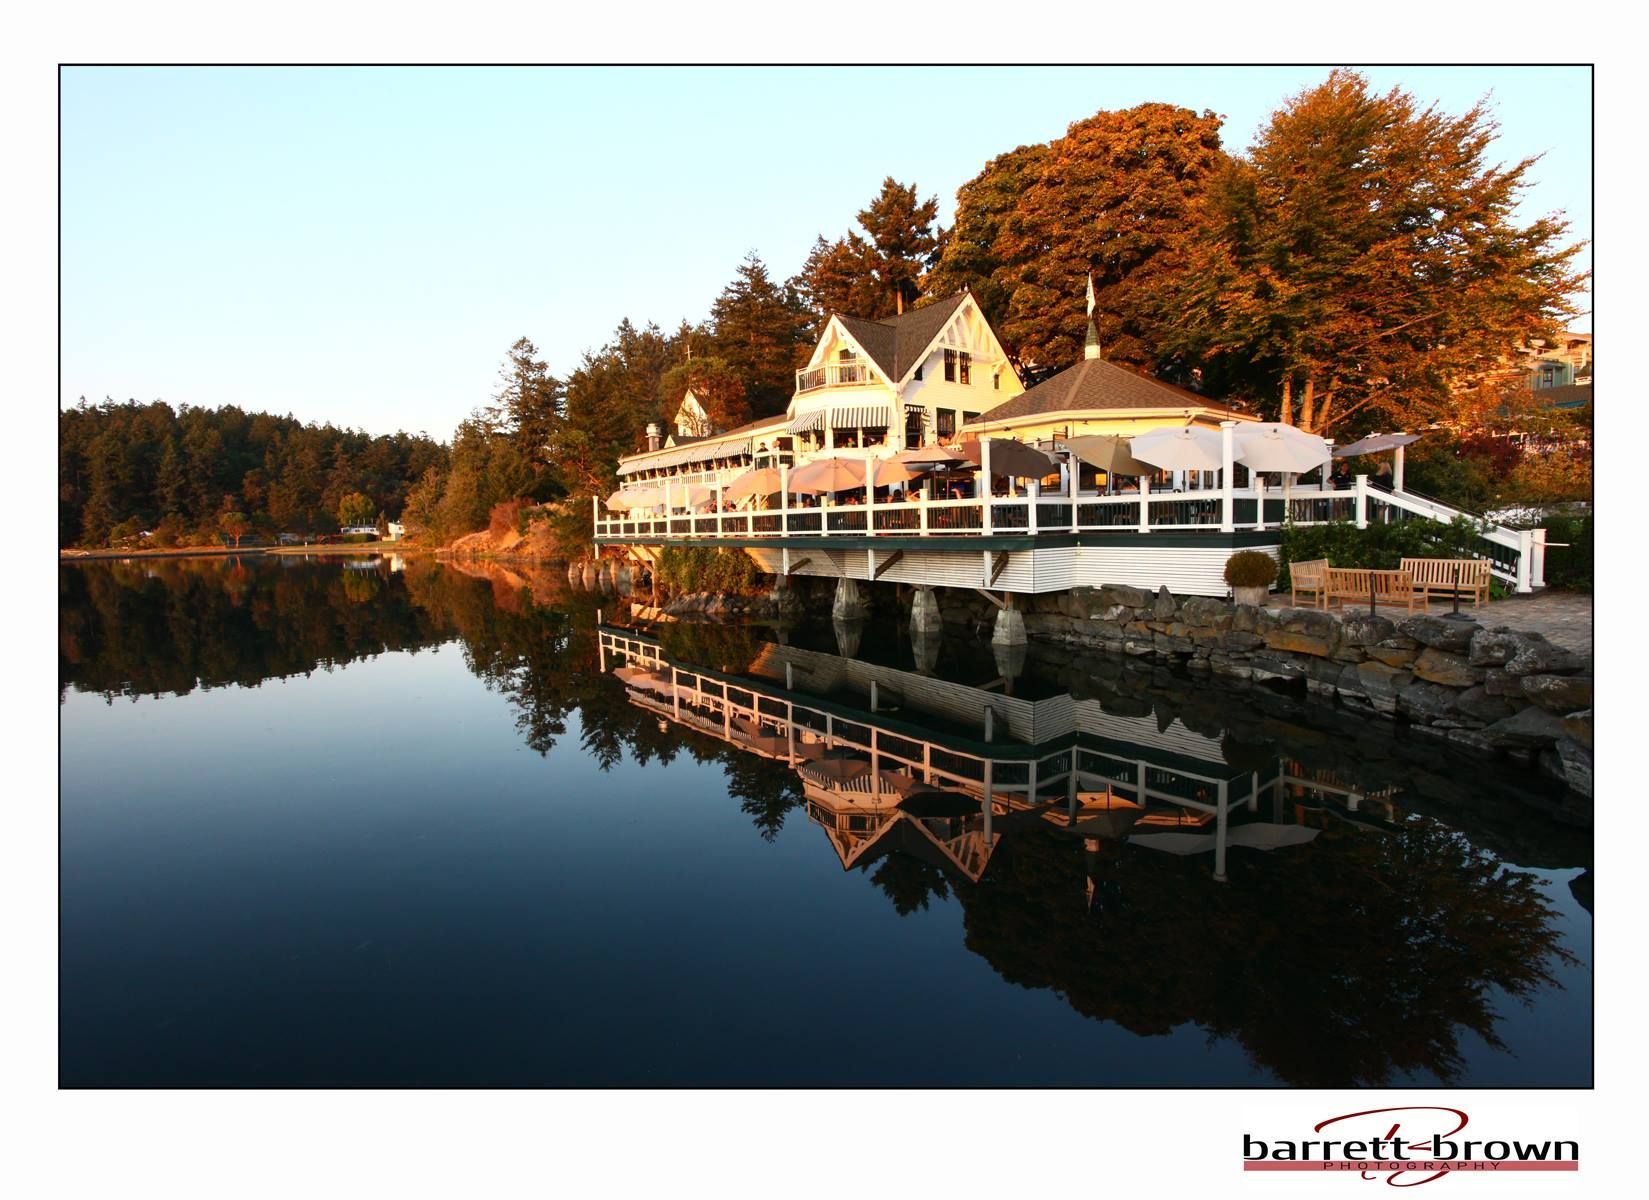 The Wedding Venue on the Lake